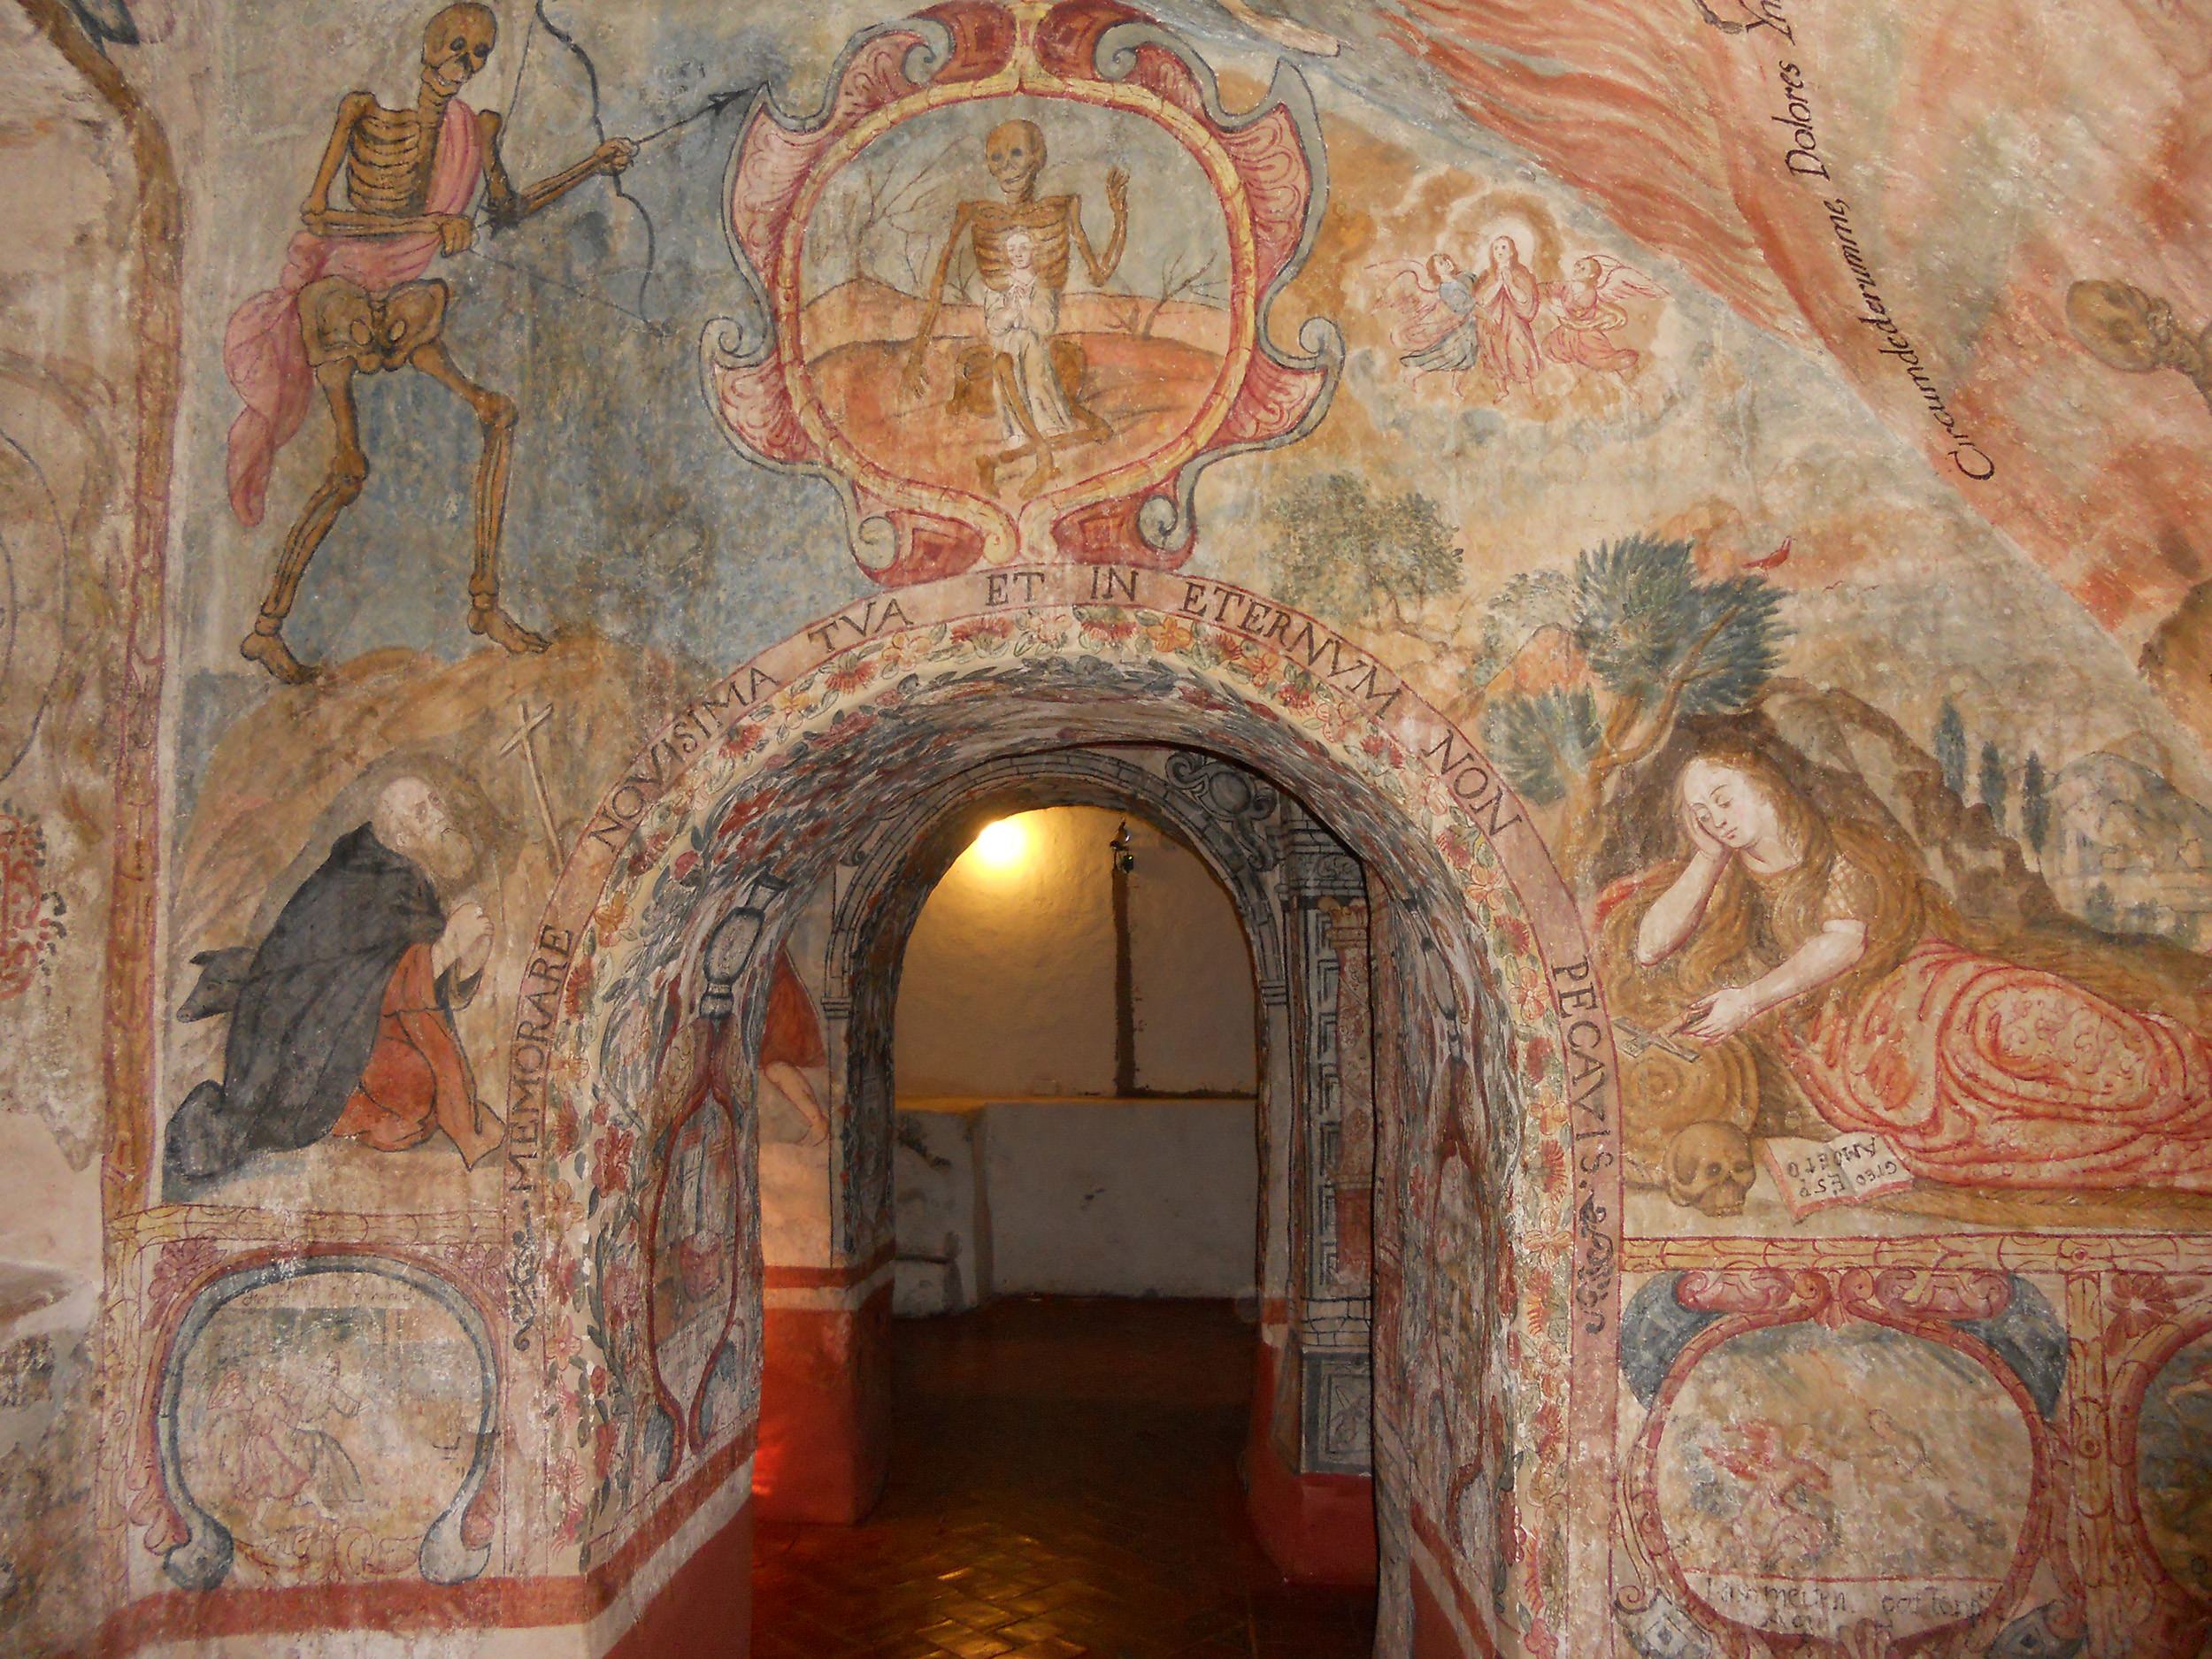 Fig. 25 Mural painting from the Celda Salamanca of the Convento de la Merced (Cuzco), 18th century. Much of the iconography, and particularly the image above with Death housing a human soul in its ribs, derives from one of the emblems included in Diego Suárez de Figueroa's El camino del cielo, published in Madrid in 1738.